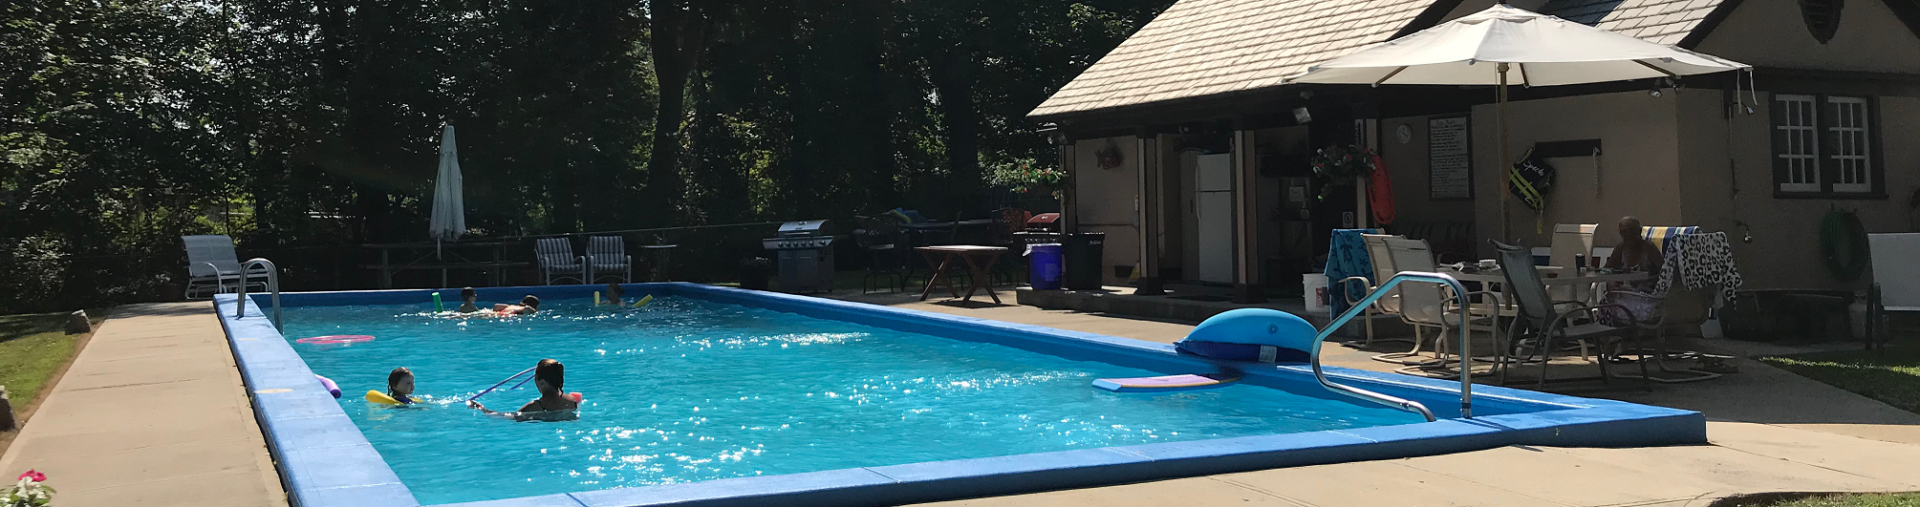 Pool Rules – Watchung Hills Elks